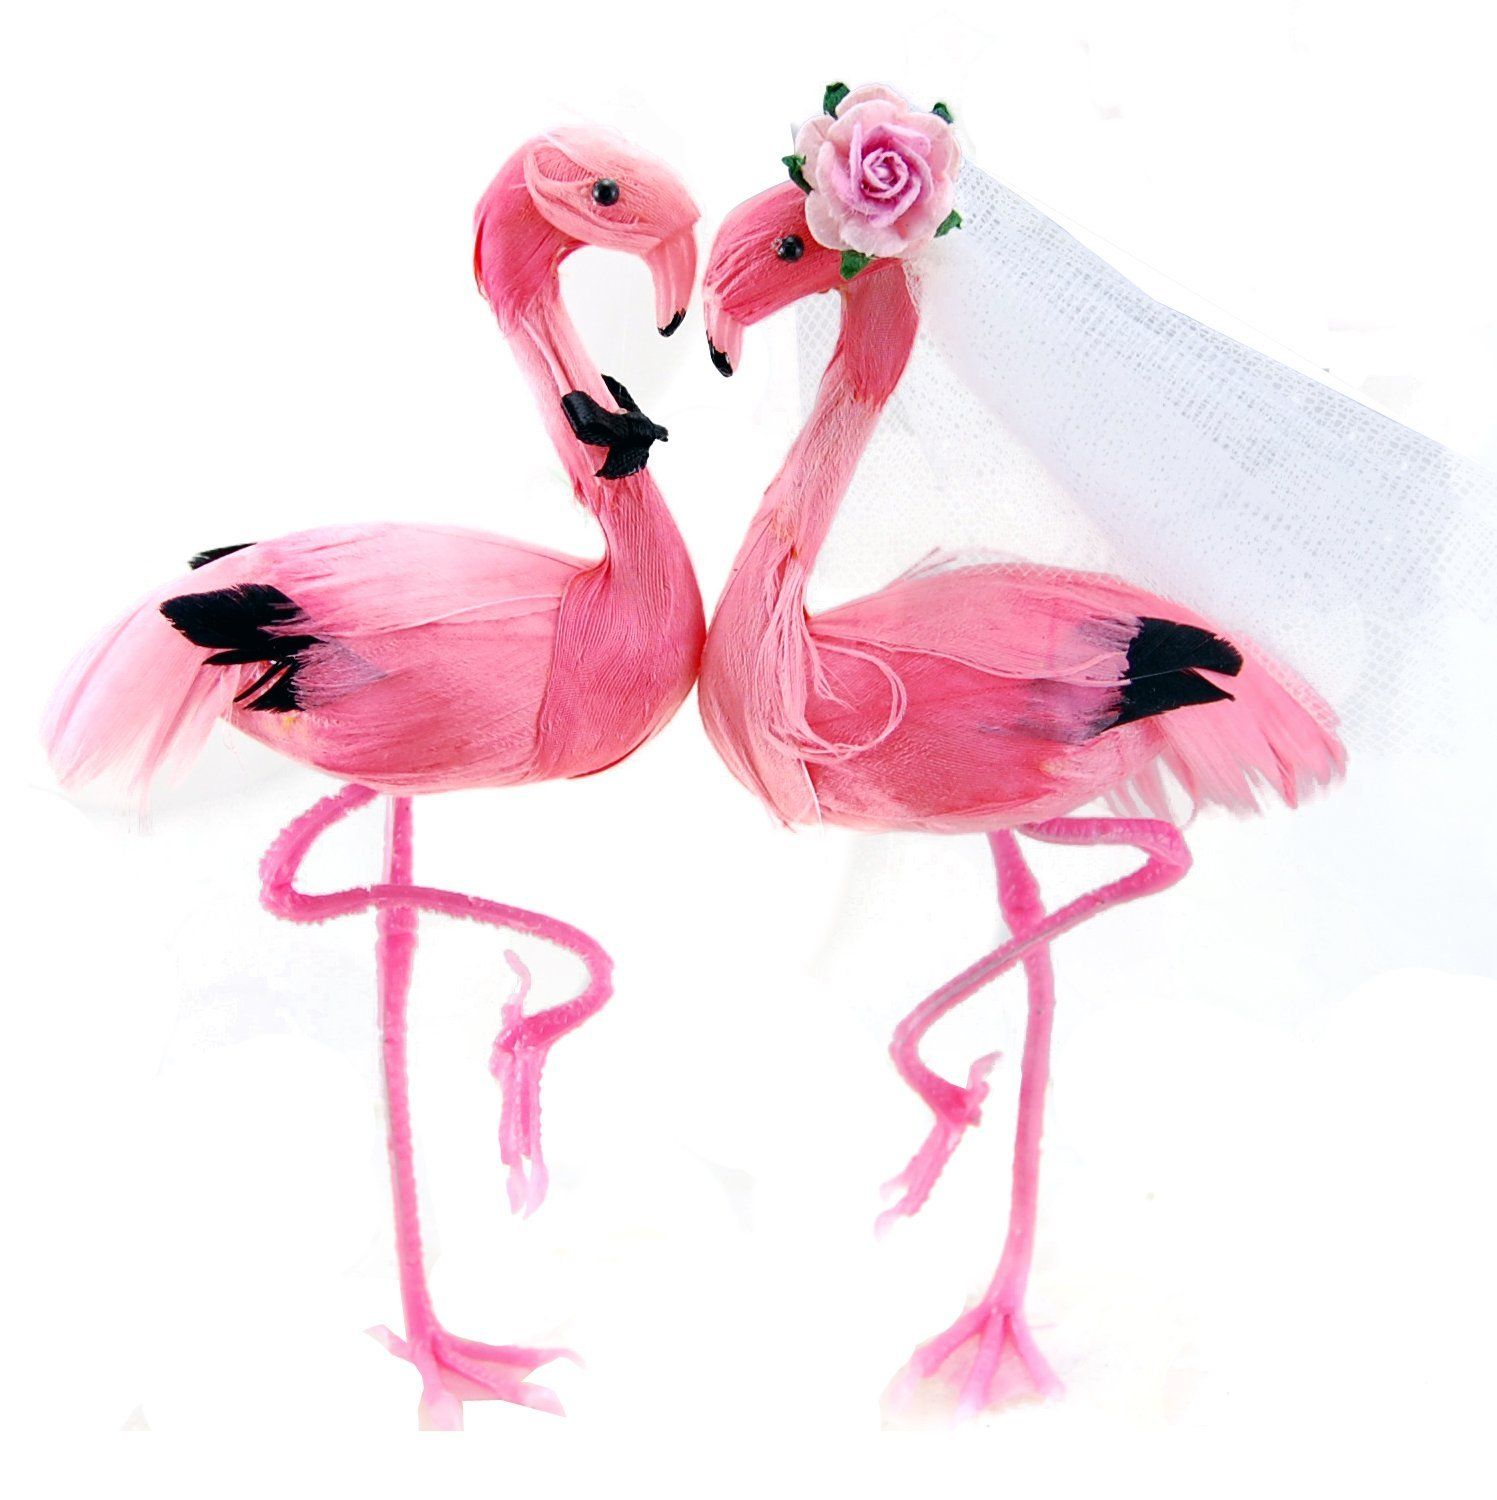 Flamingo wedding cake topper set. | Wedding Products and Favors ...